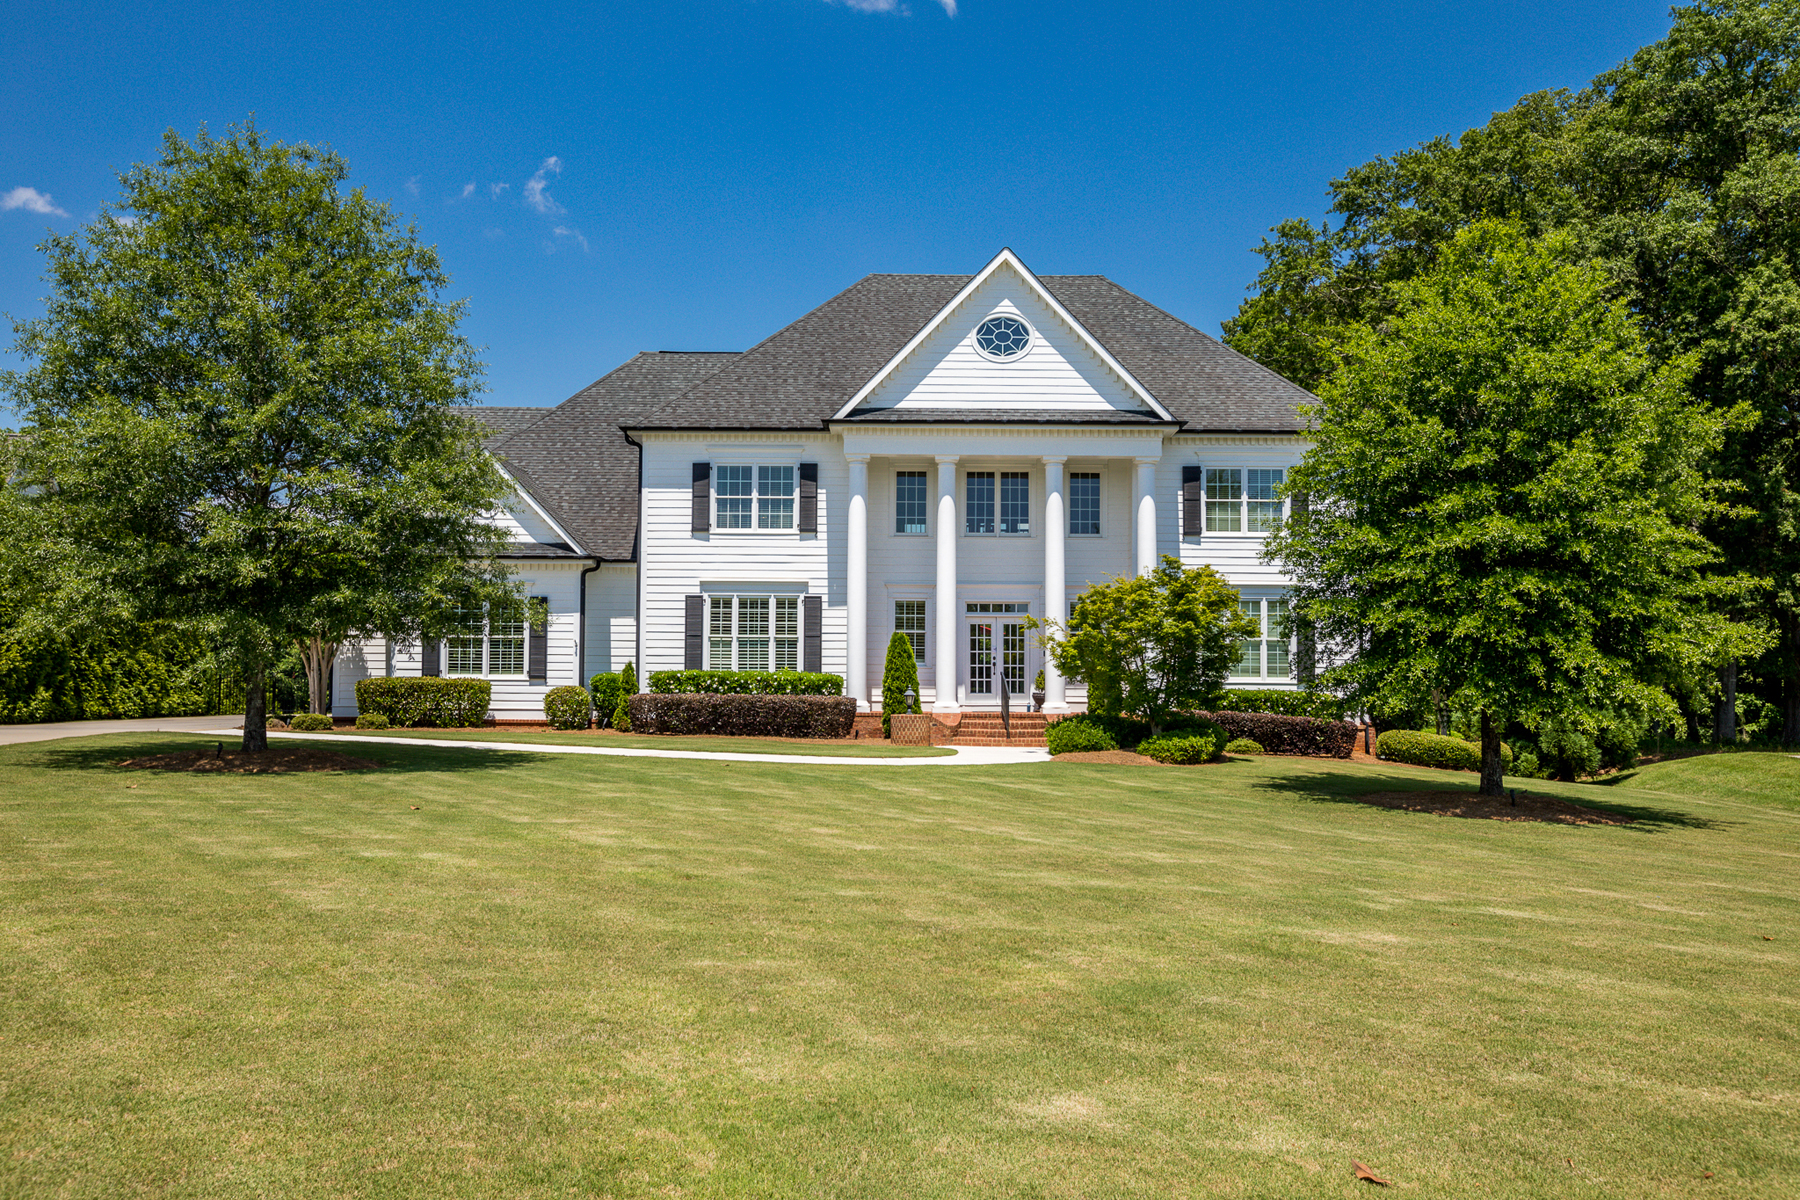 Single Family Homes for Sale at Sophisticated Greek Revival with Spectacular Pool and Spa on Golf Course 585 Wentworth Court Fayetteville, Georgia 30215 United States